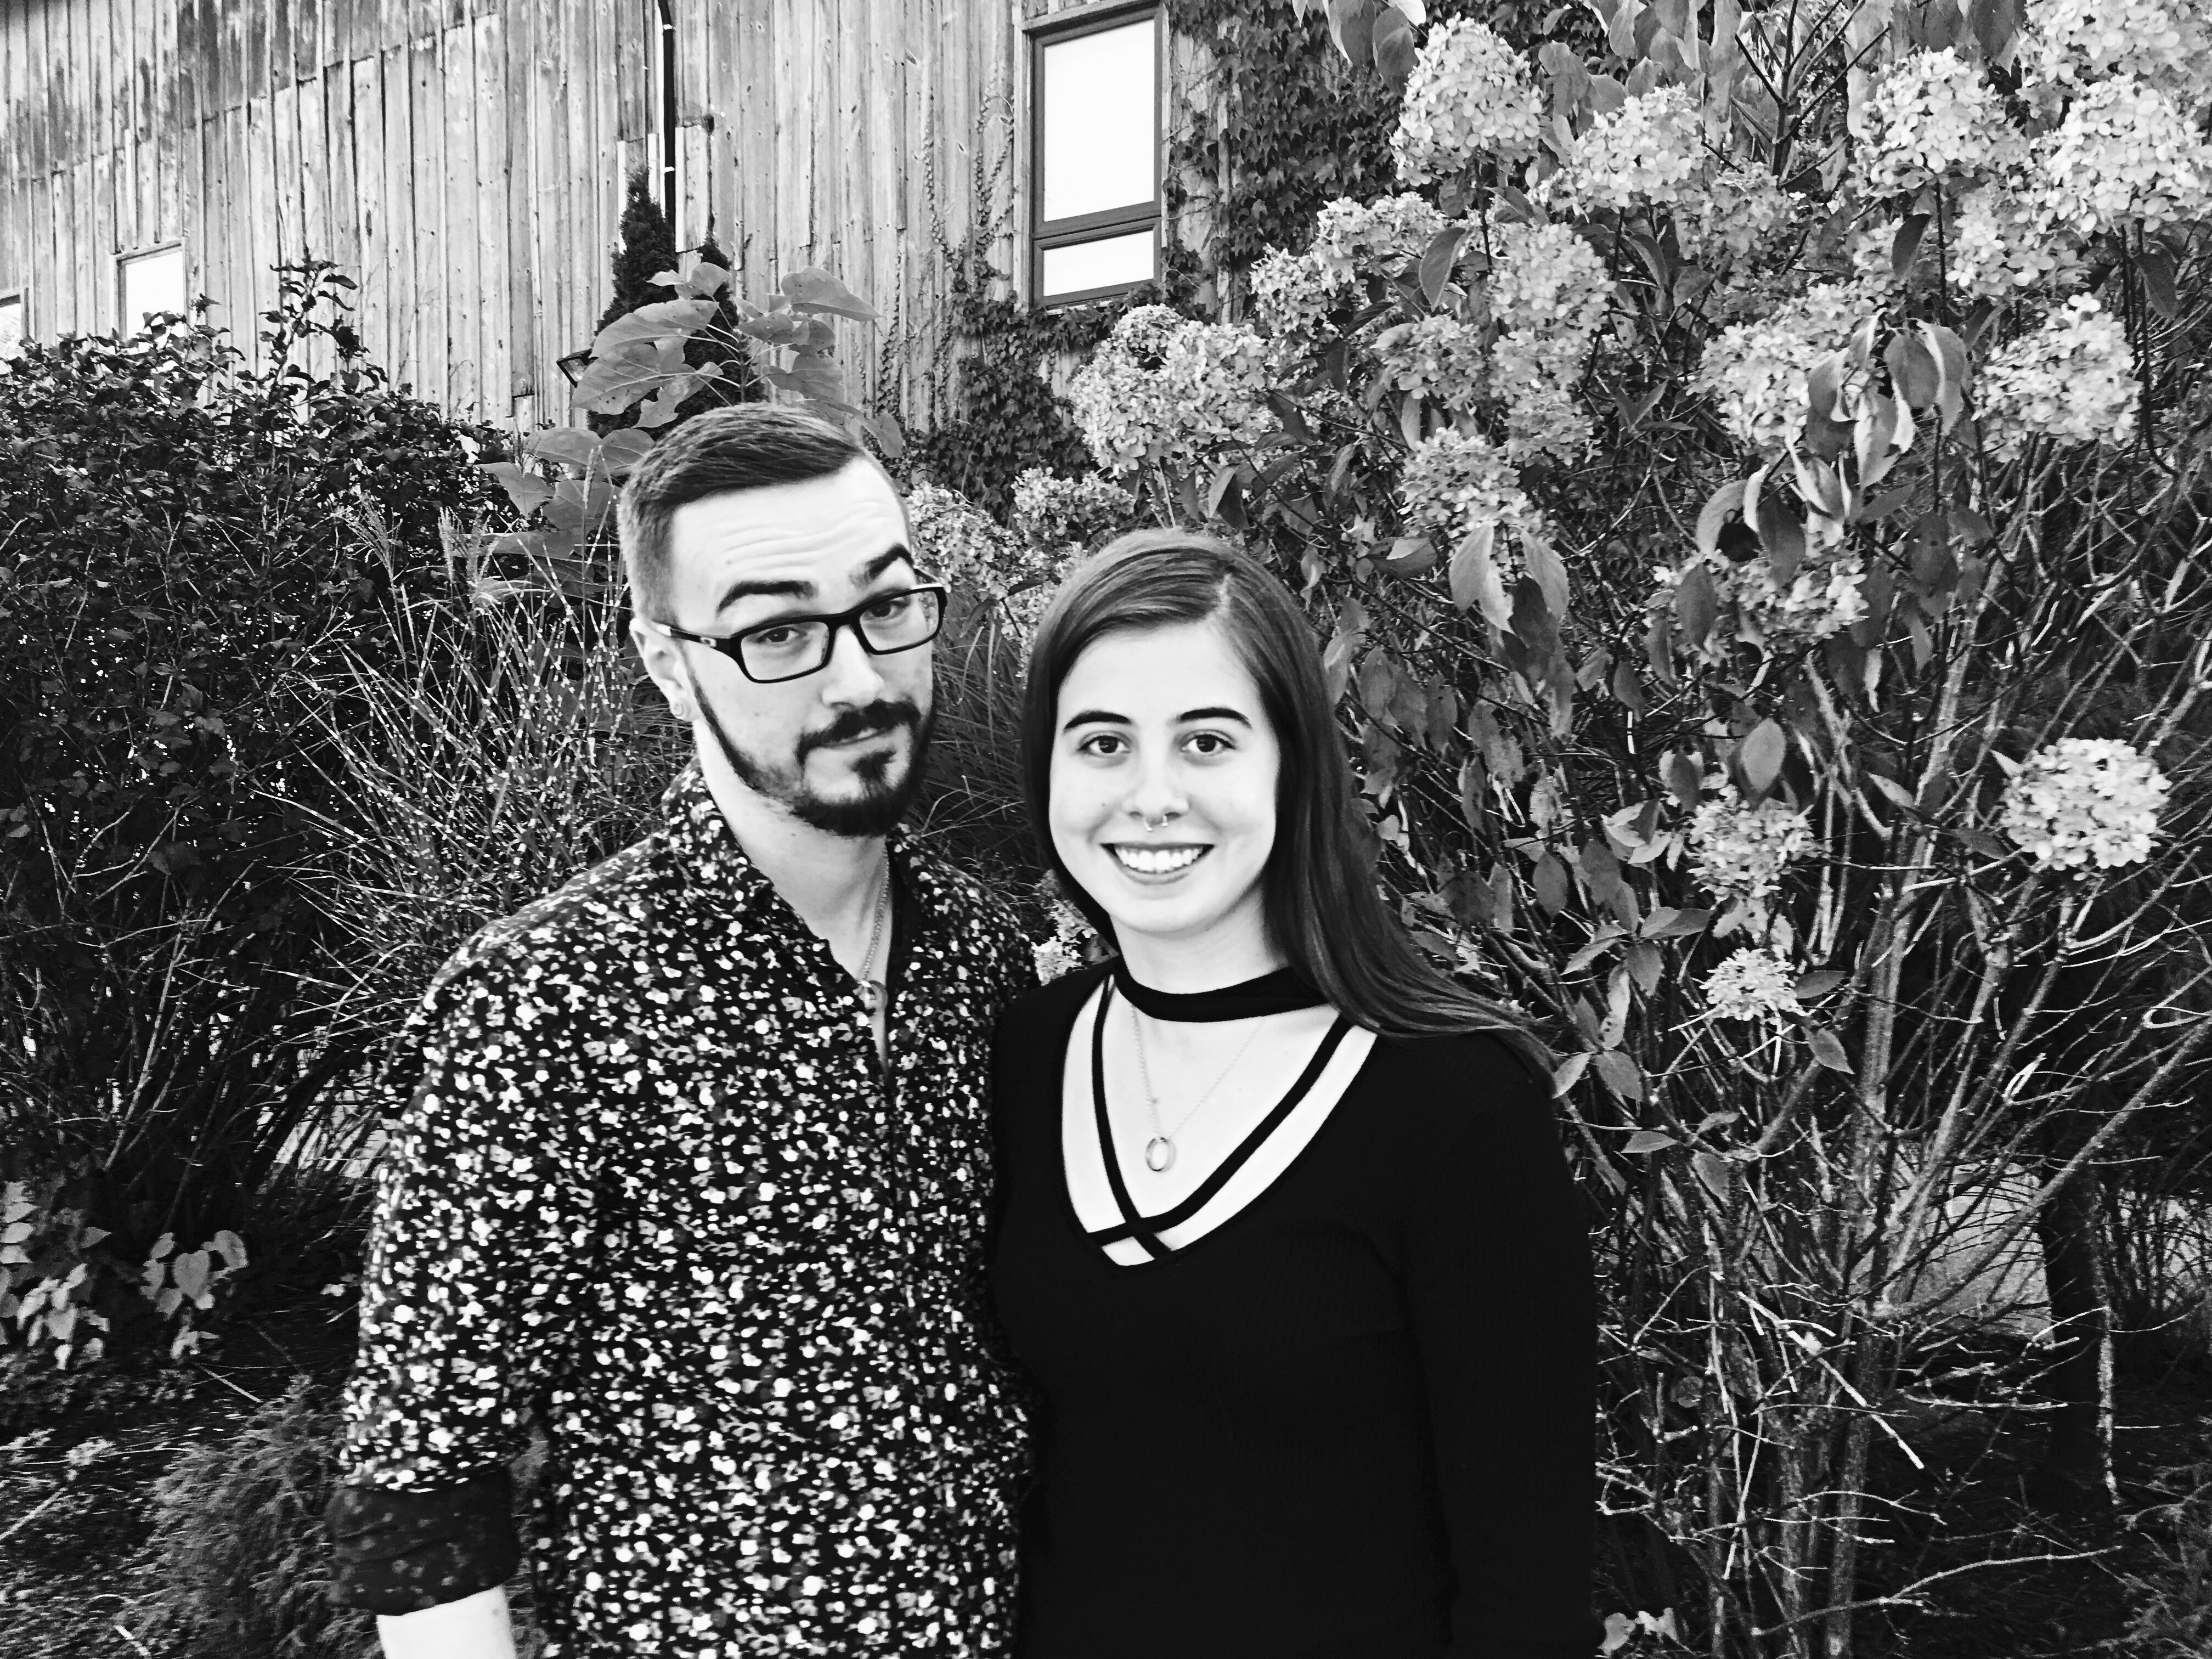 A black and white photo of the writer and her boyfriend.